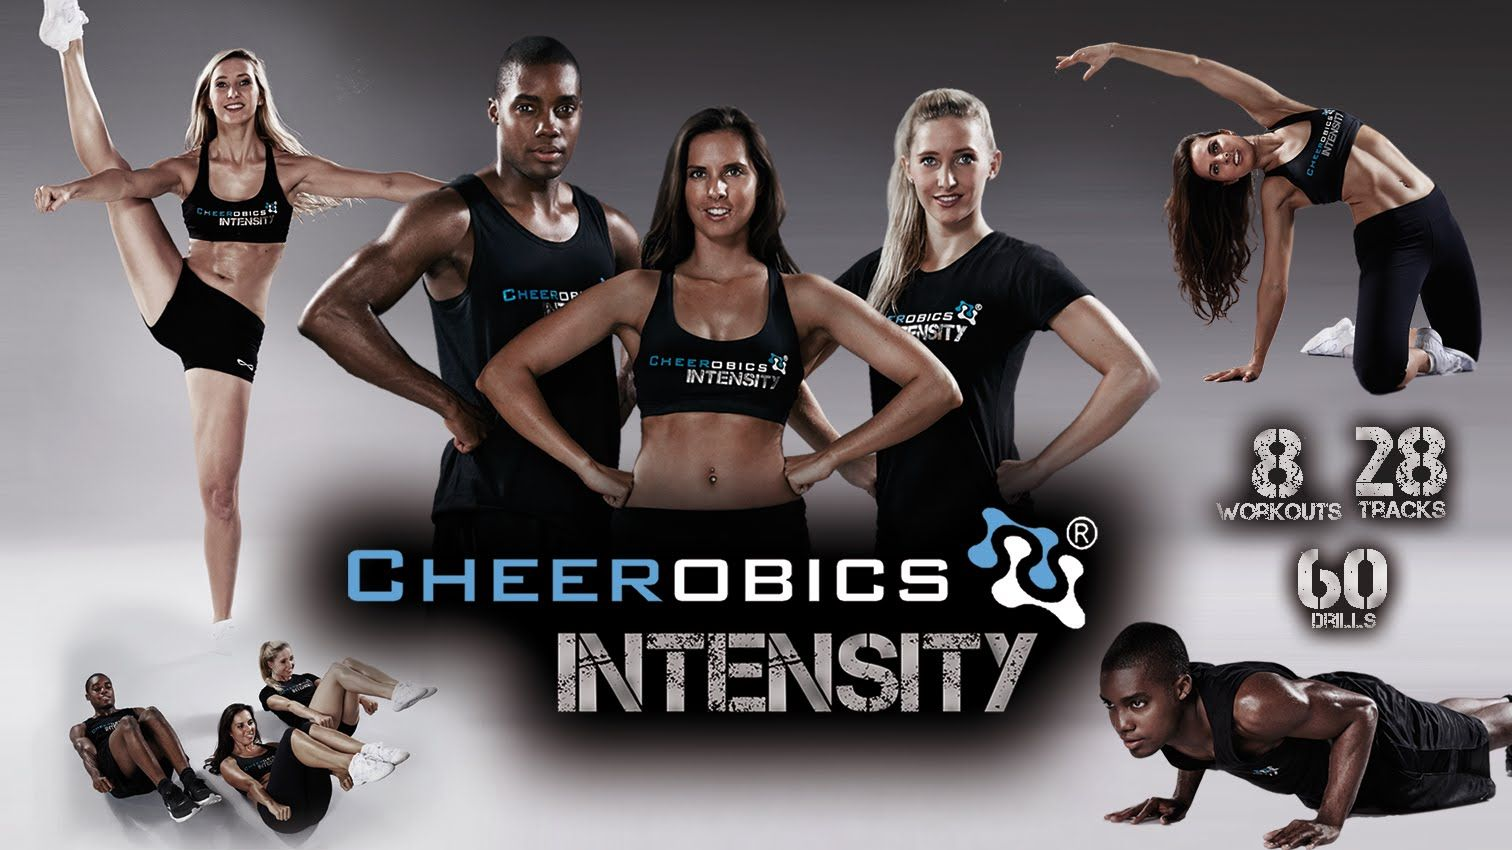 Intensity Cheerleading Conditioning Workout Cheerleading Workouts Conditioning Workouts Cheer Workouts